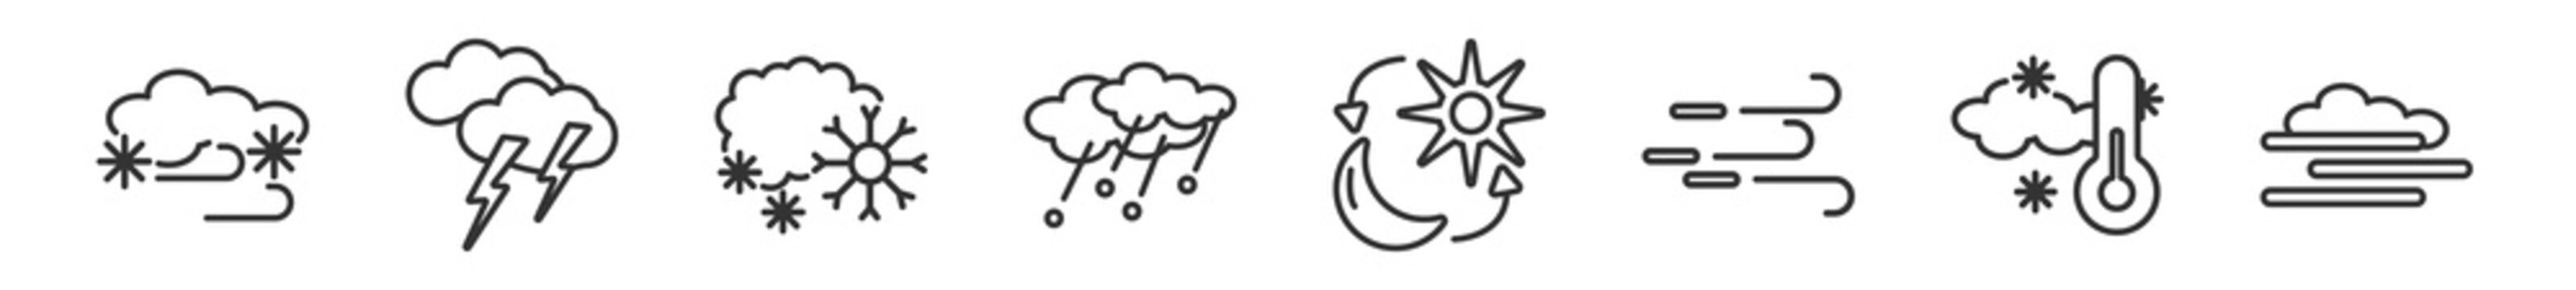 outline set of weather line icons. linear vector icons such as blizzard, light bolt, snowing, hail, daytime, blanket of fog. vector illustration.